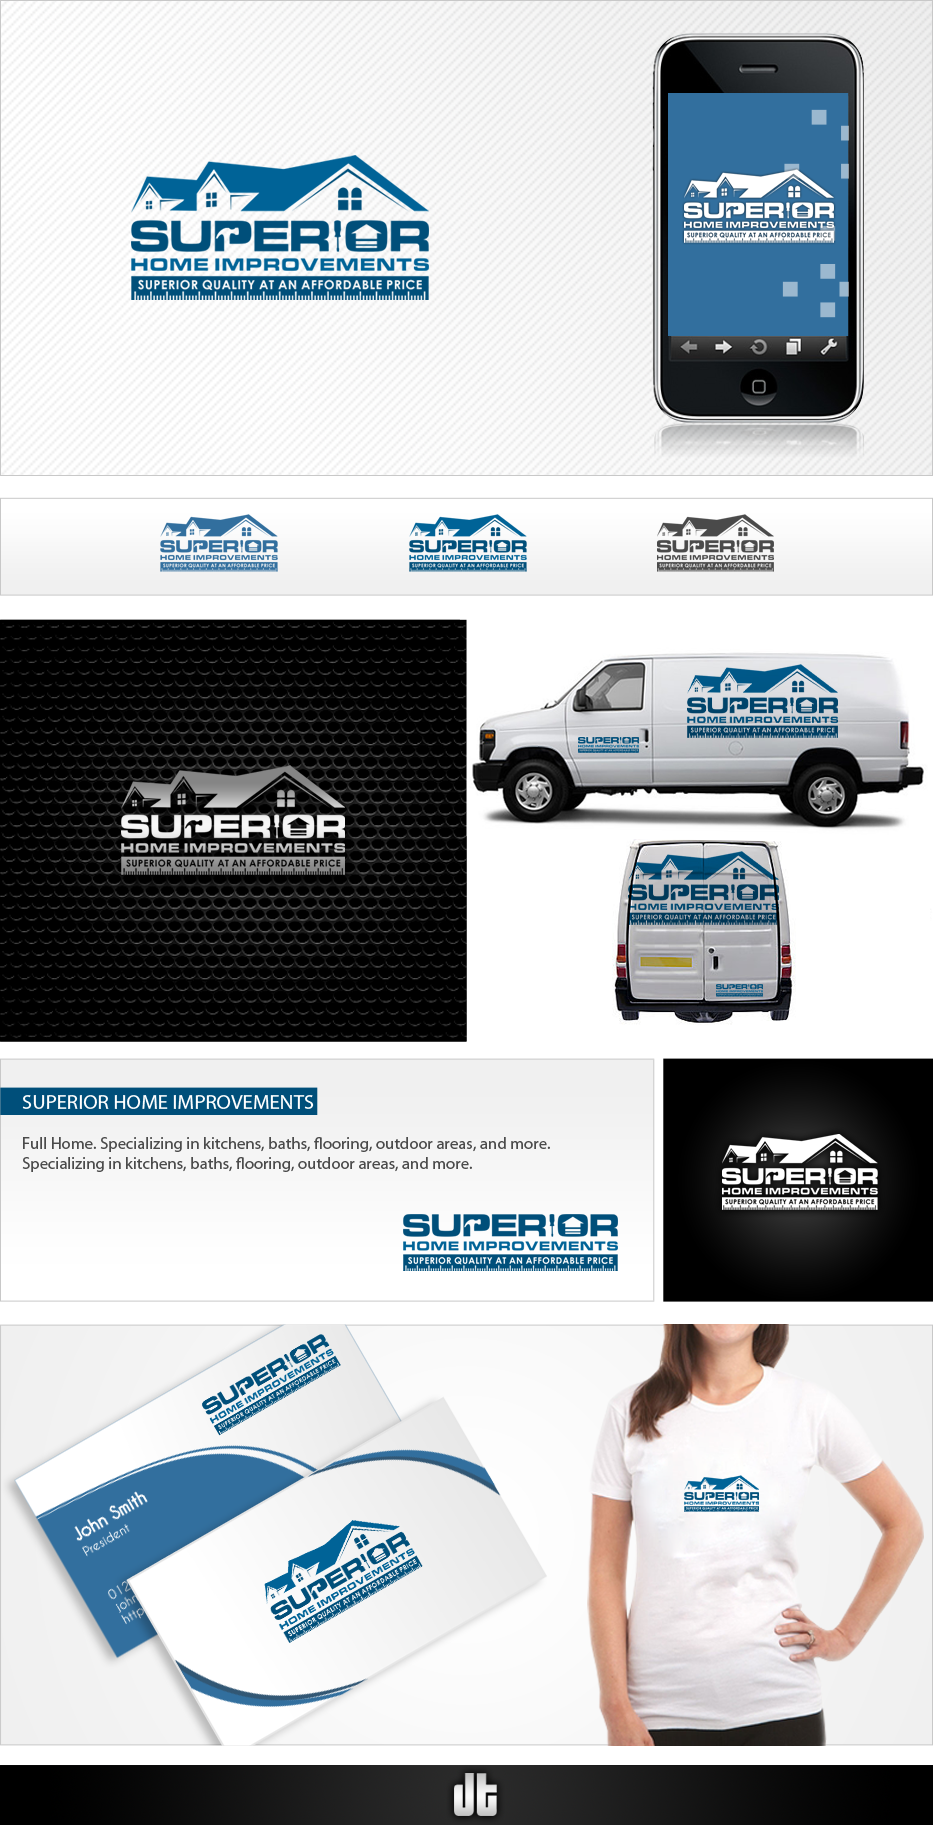 logo and business card for Superior Home Improvements, Inc.